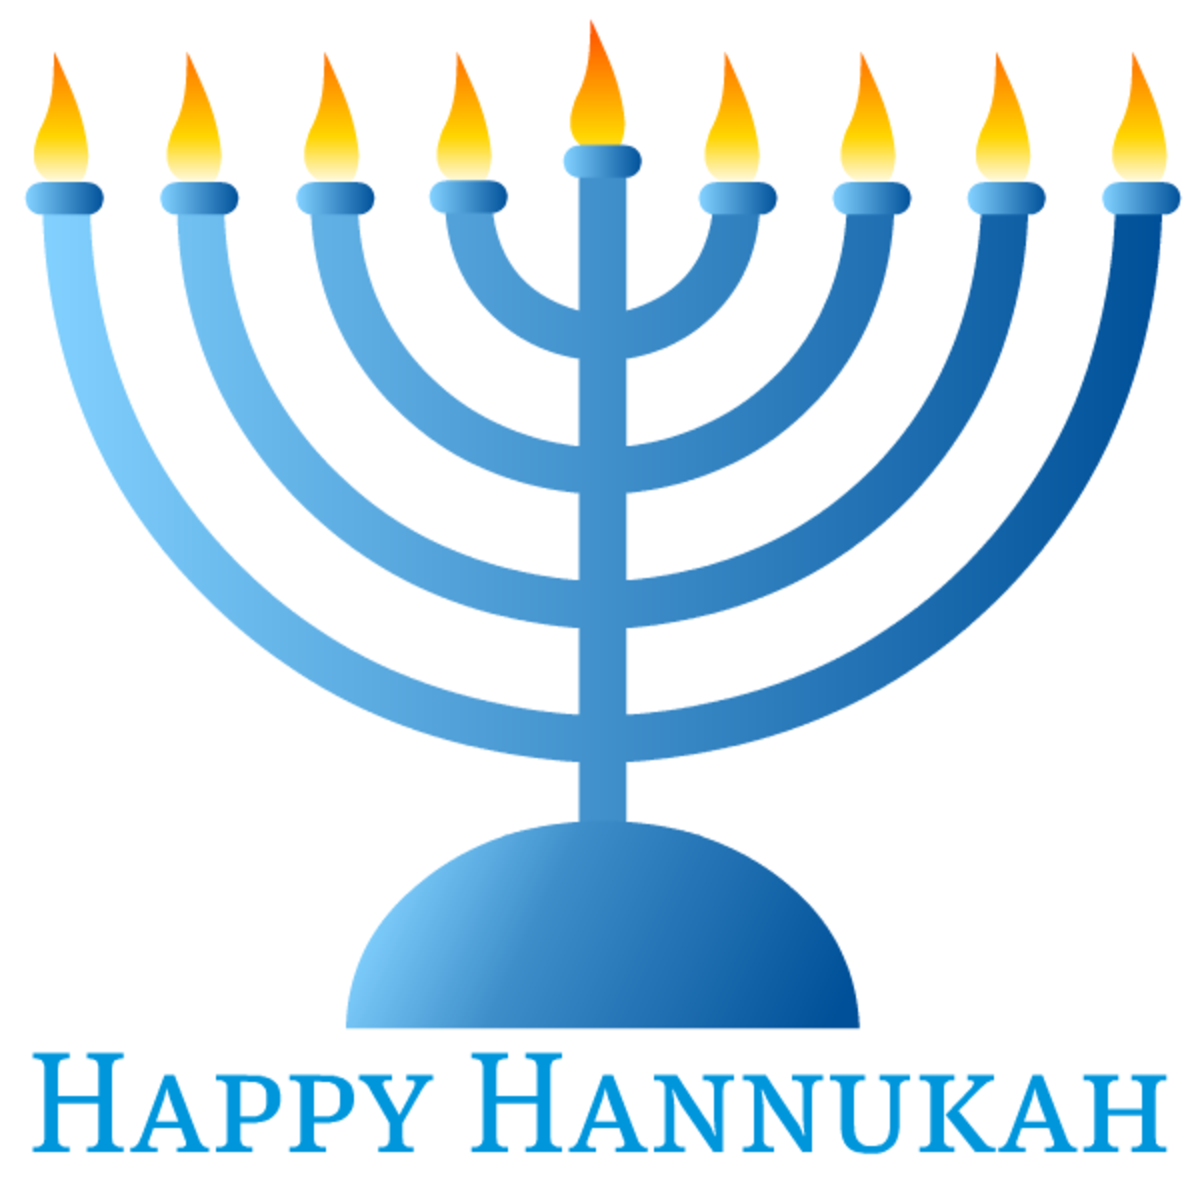 Follow the instructions in the left column to download the Hanukkah cards